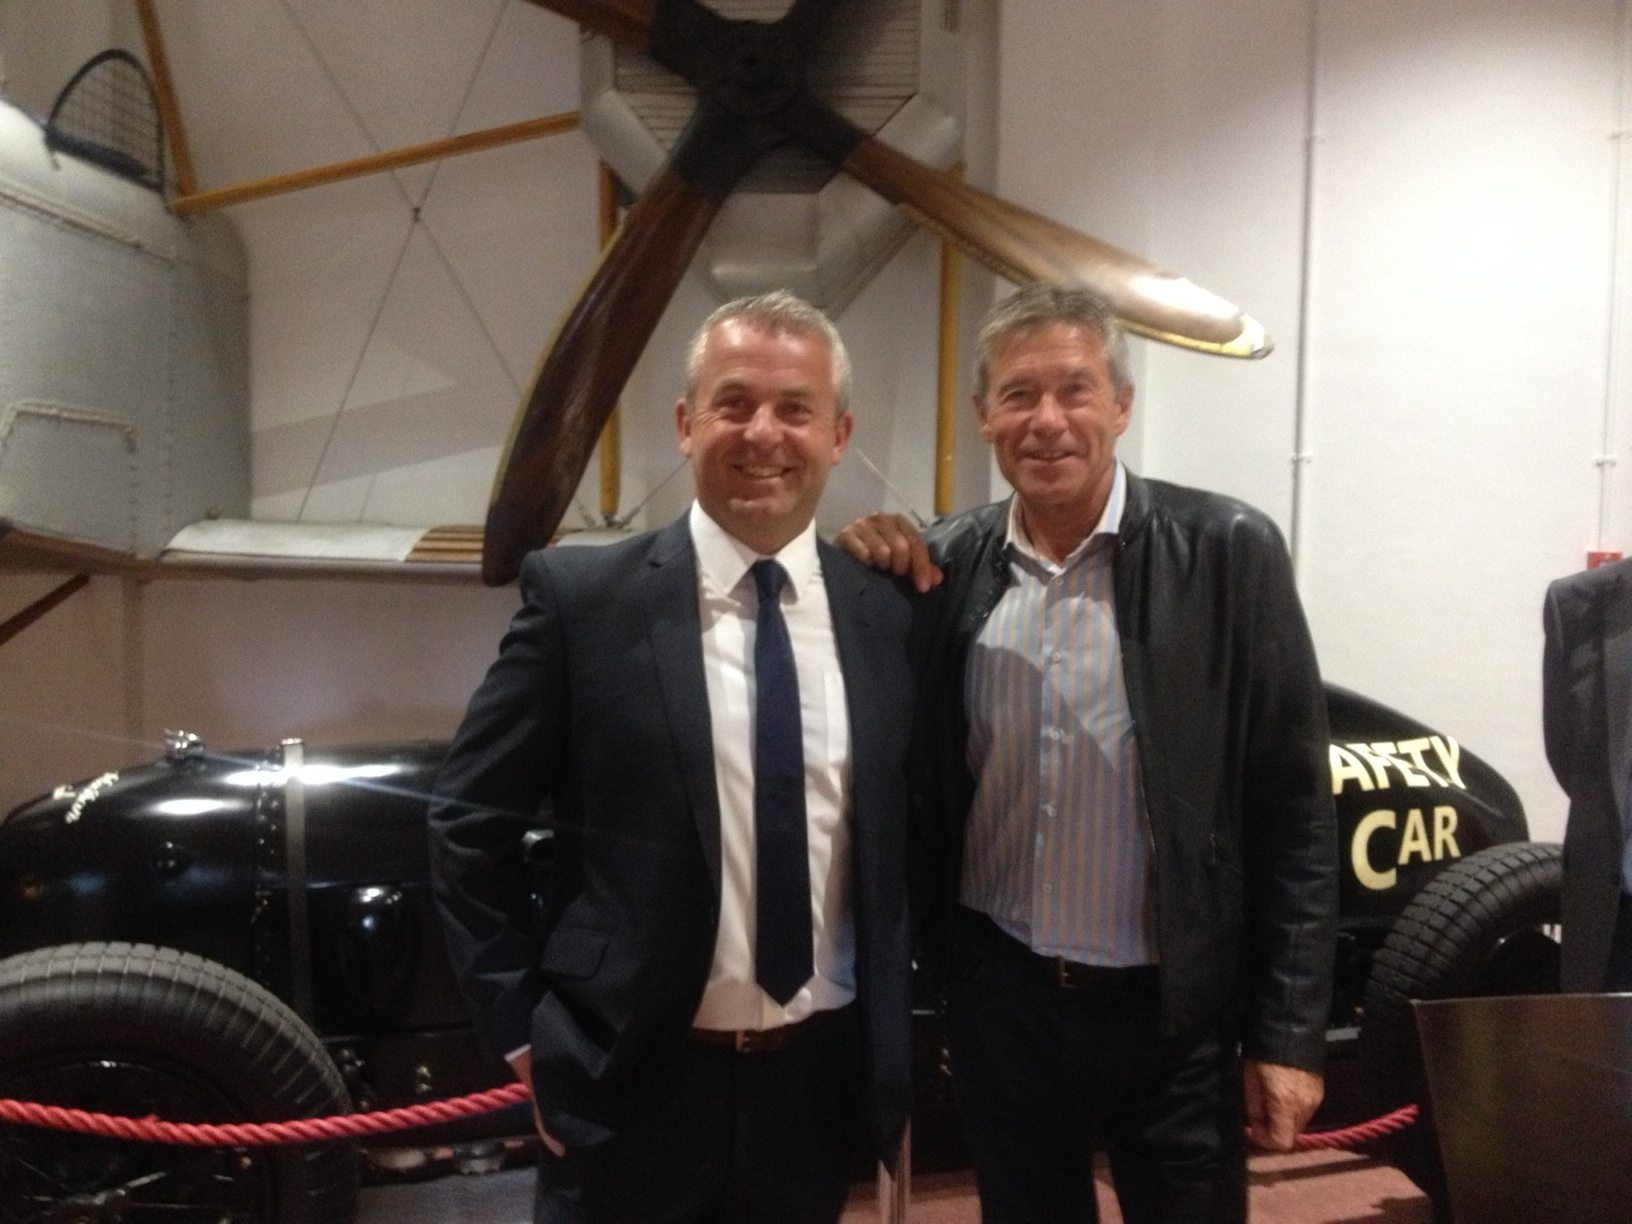 Tiff Needell has been checking us out